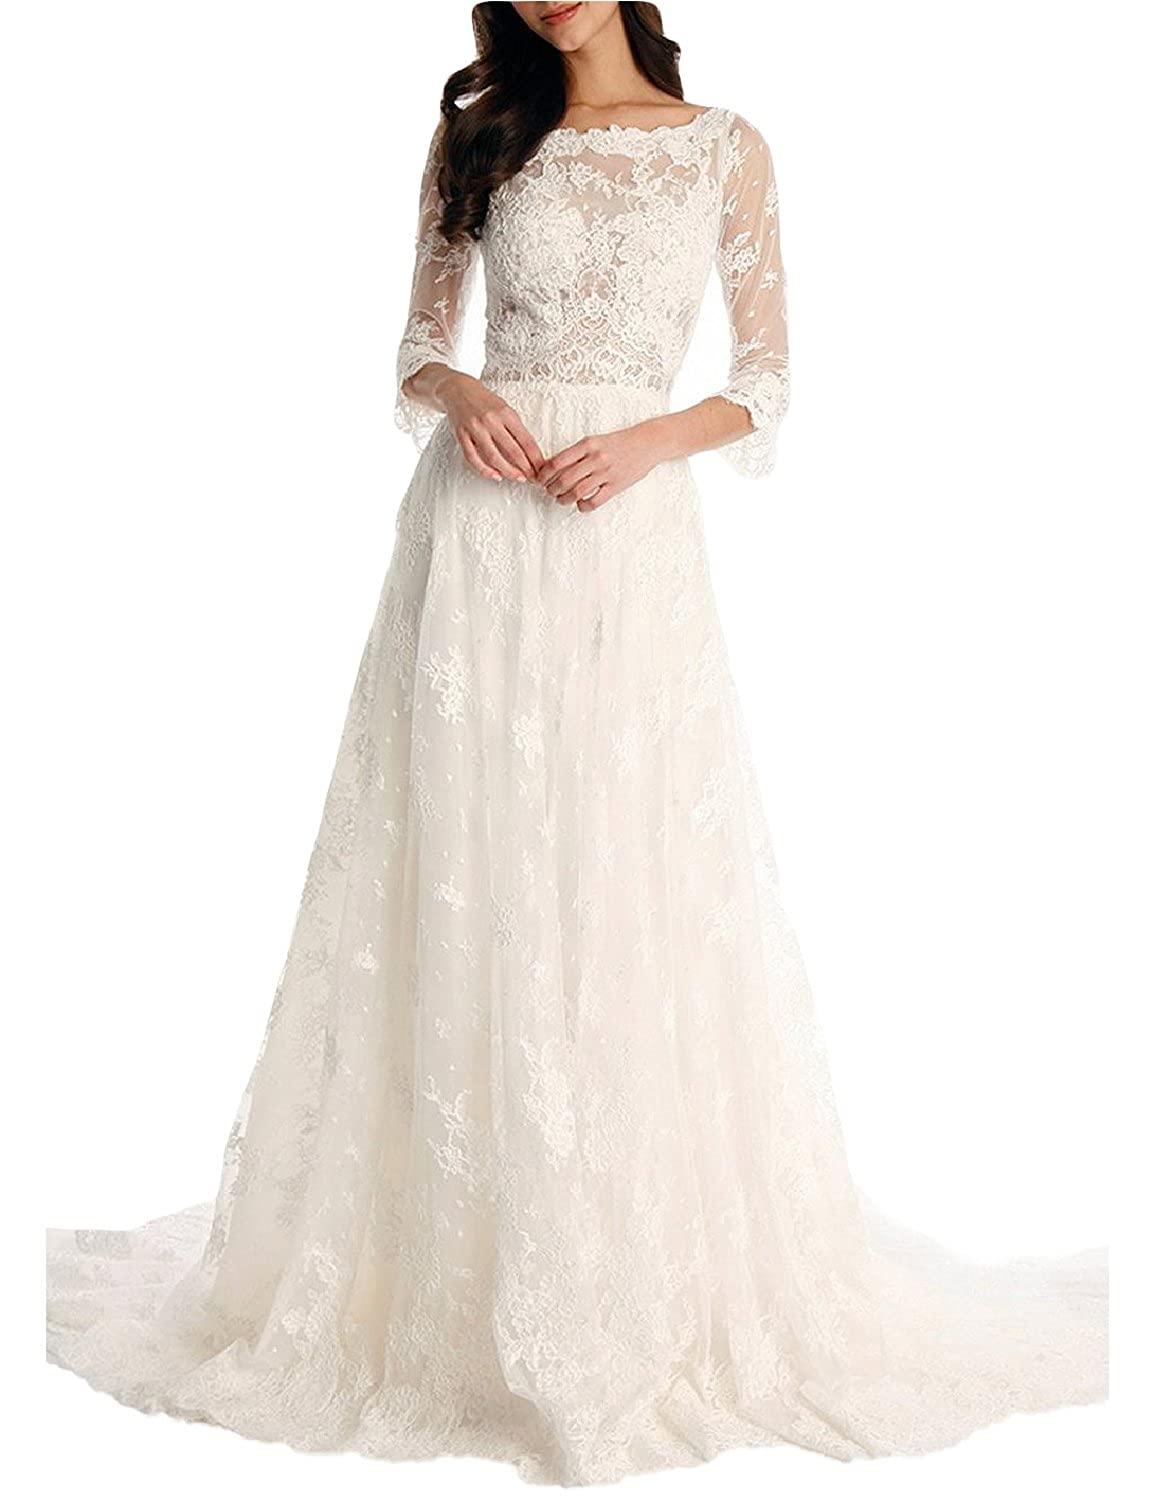 YSMei Women's Vintage Long Beach Wedding Dresses 3/4 Sleeve Lace Bride Gowns 104